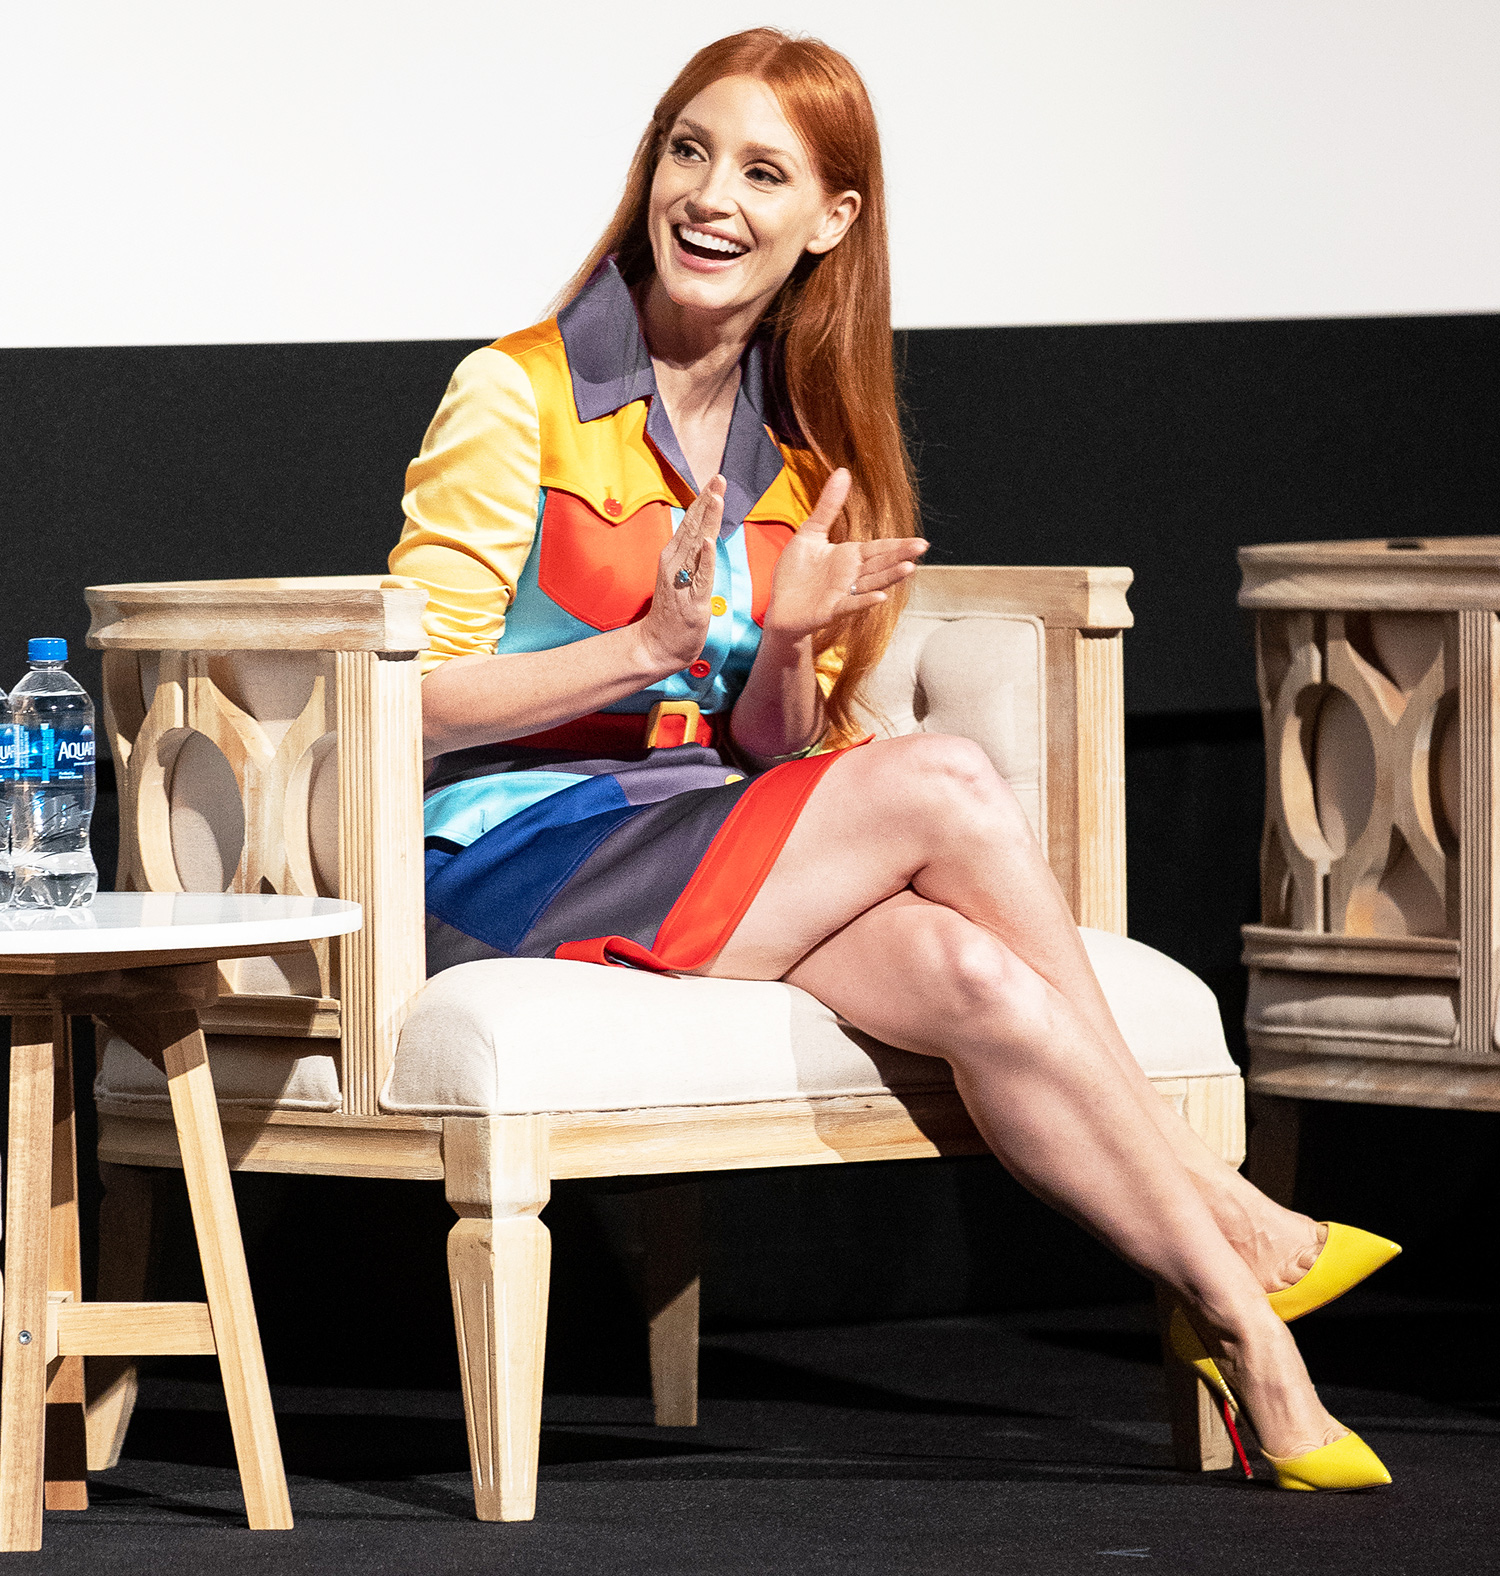 Jessica Chastain attends the 2021 TIFF Tribute Awards Press Conference at Roy Thomson Hall on September 11, 2021 in Toronto, Ontario.